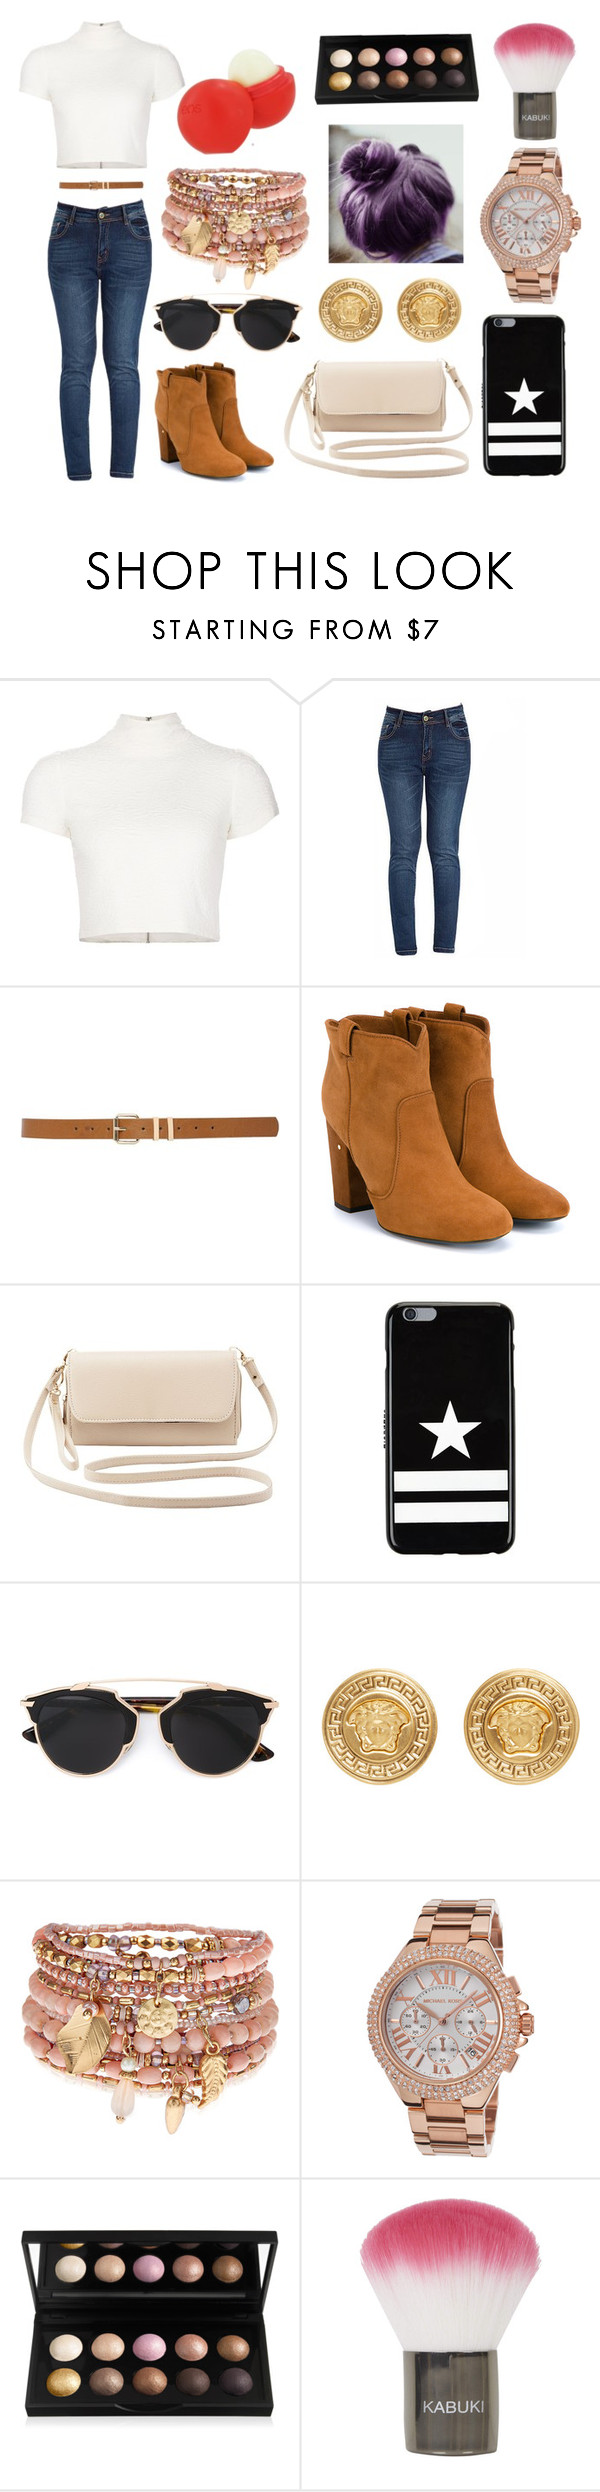 """""""Untitled #2562"""" by onedirection-h1n1l2z1 on Polyvore featuring Alice + Olivia, M&Co, Laurence Dacade, Charlotte Russe, Givenchy, Christian Dior, Versace, Accessorize, Michael Kors and Eos"""